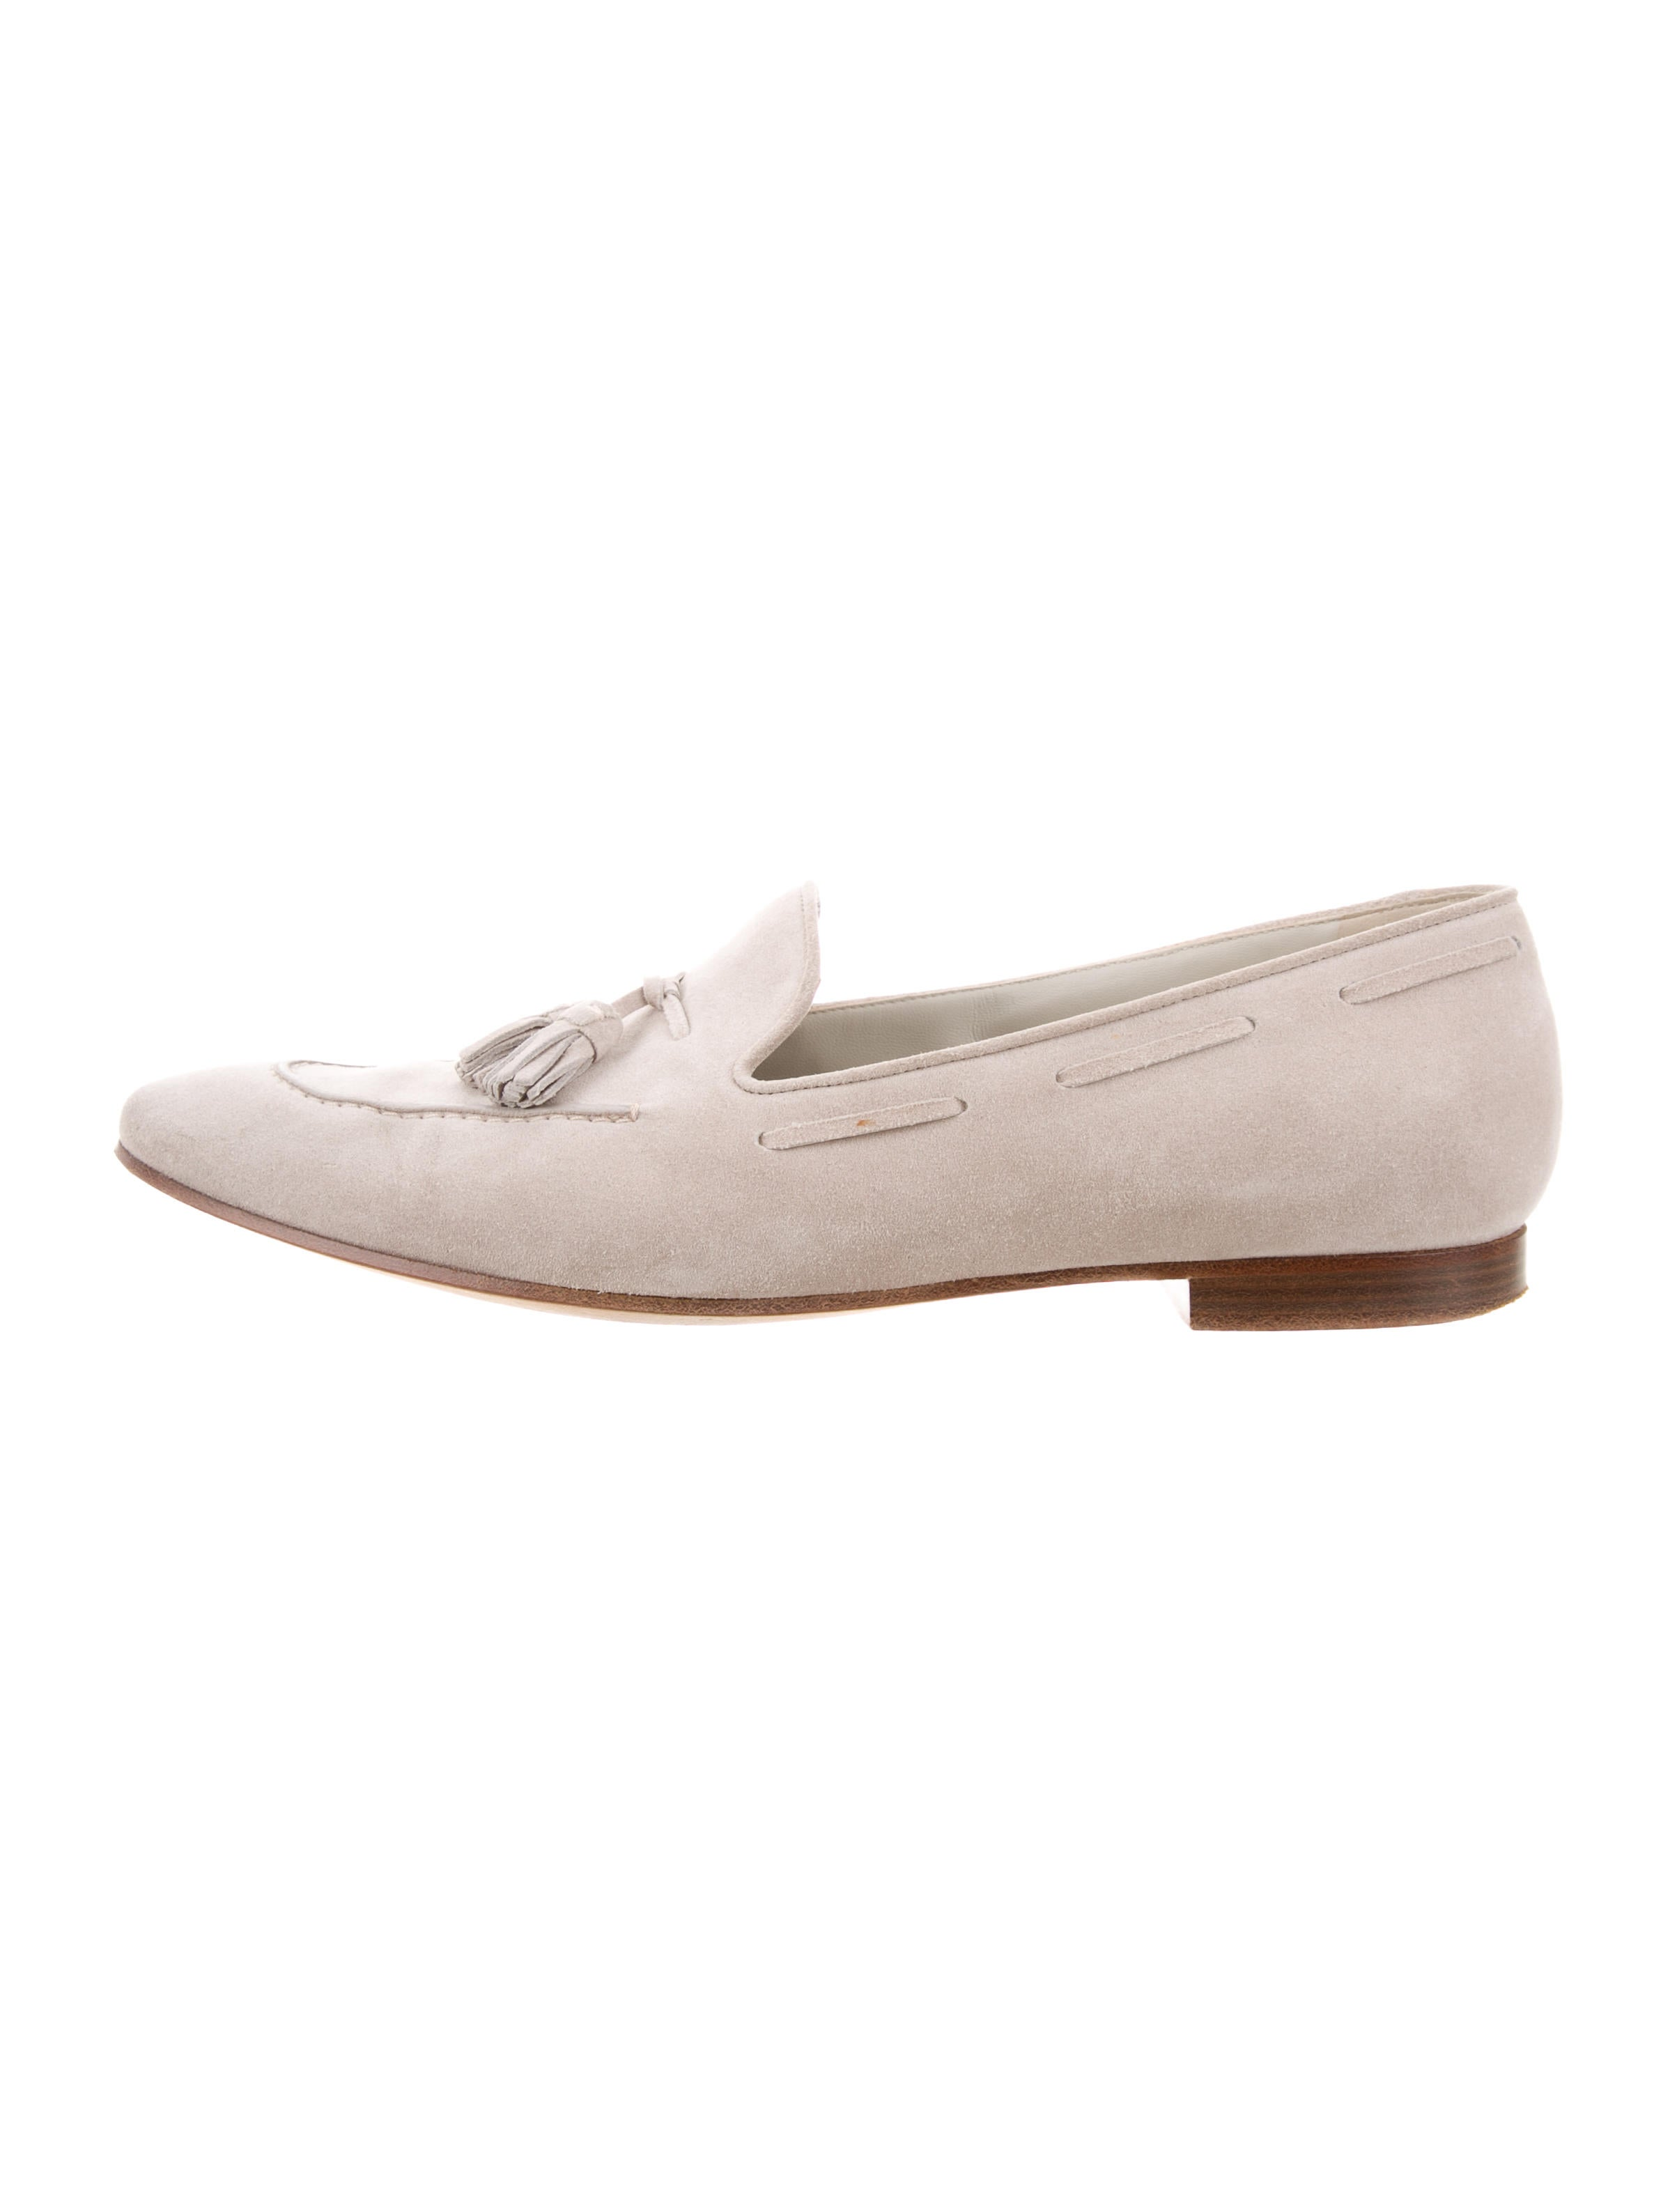 72b8285d5ee Loro Piana Pointed-Toe Suede Loafers - Shoes - LOR44245